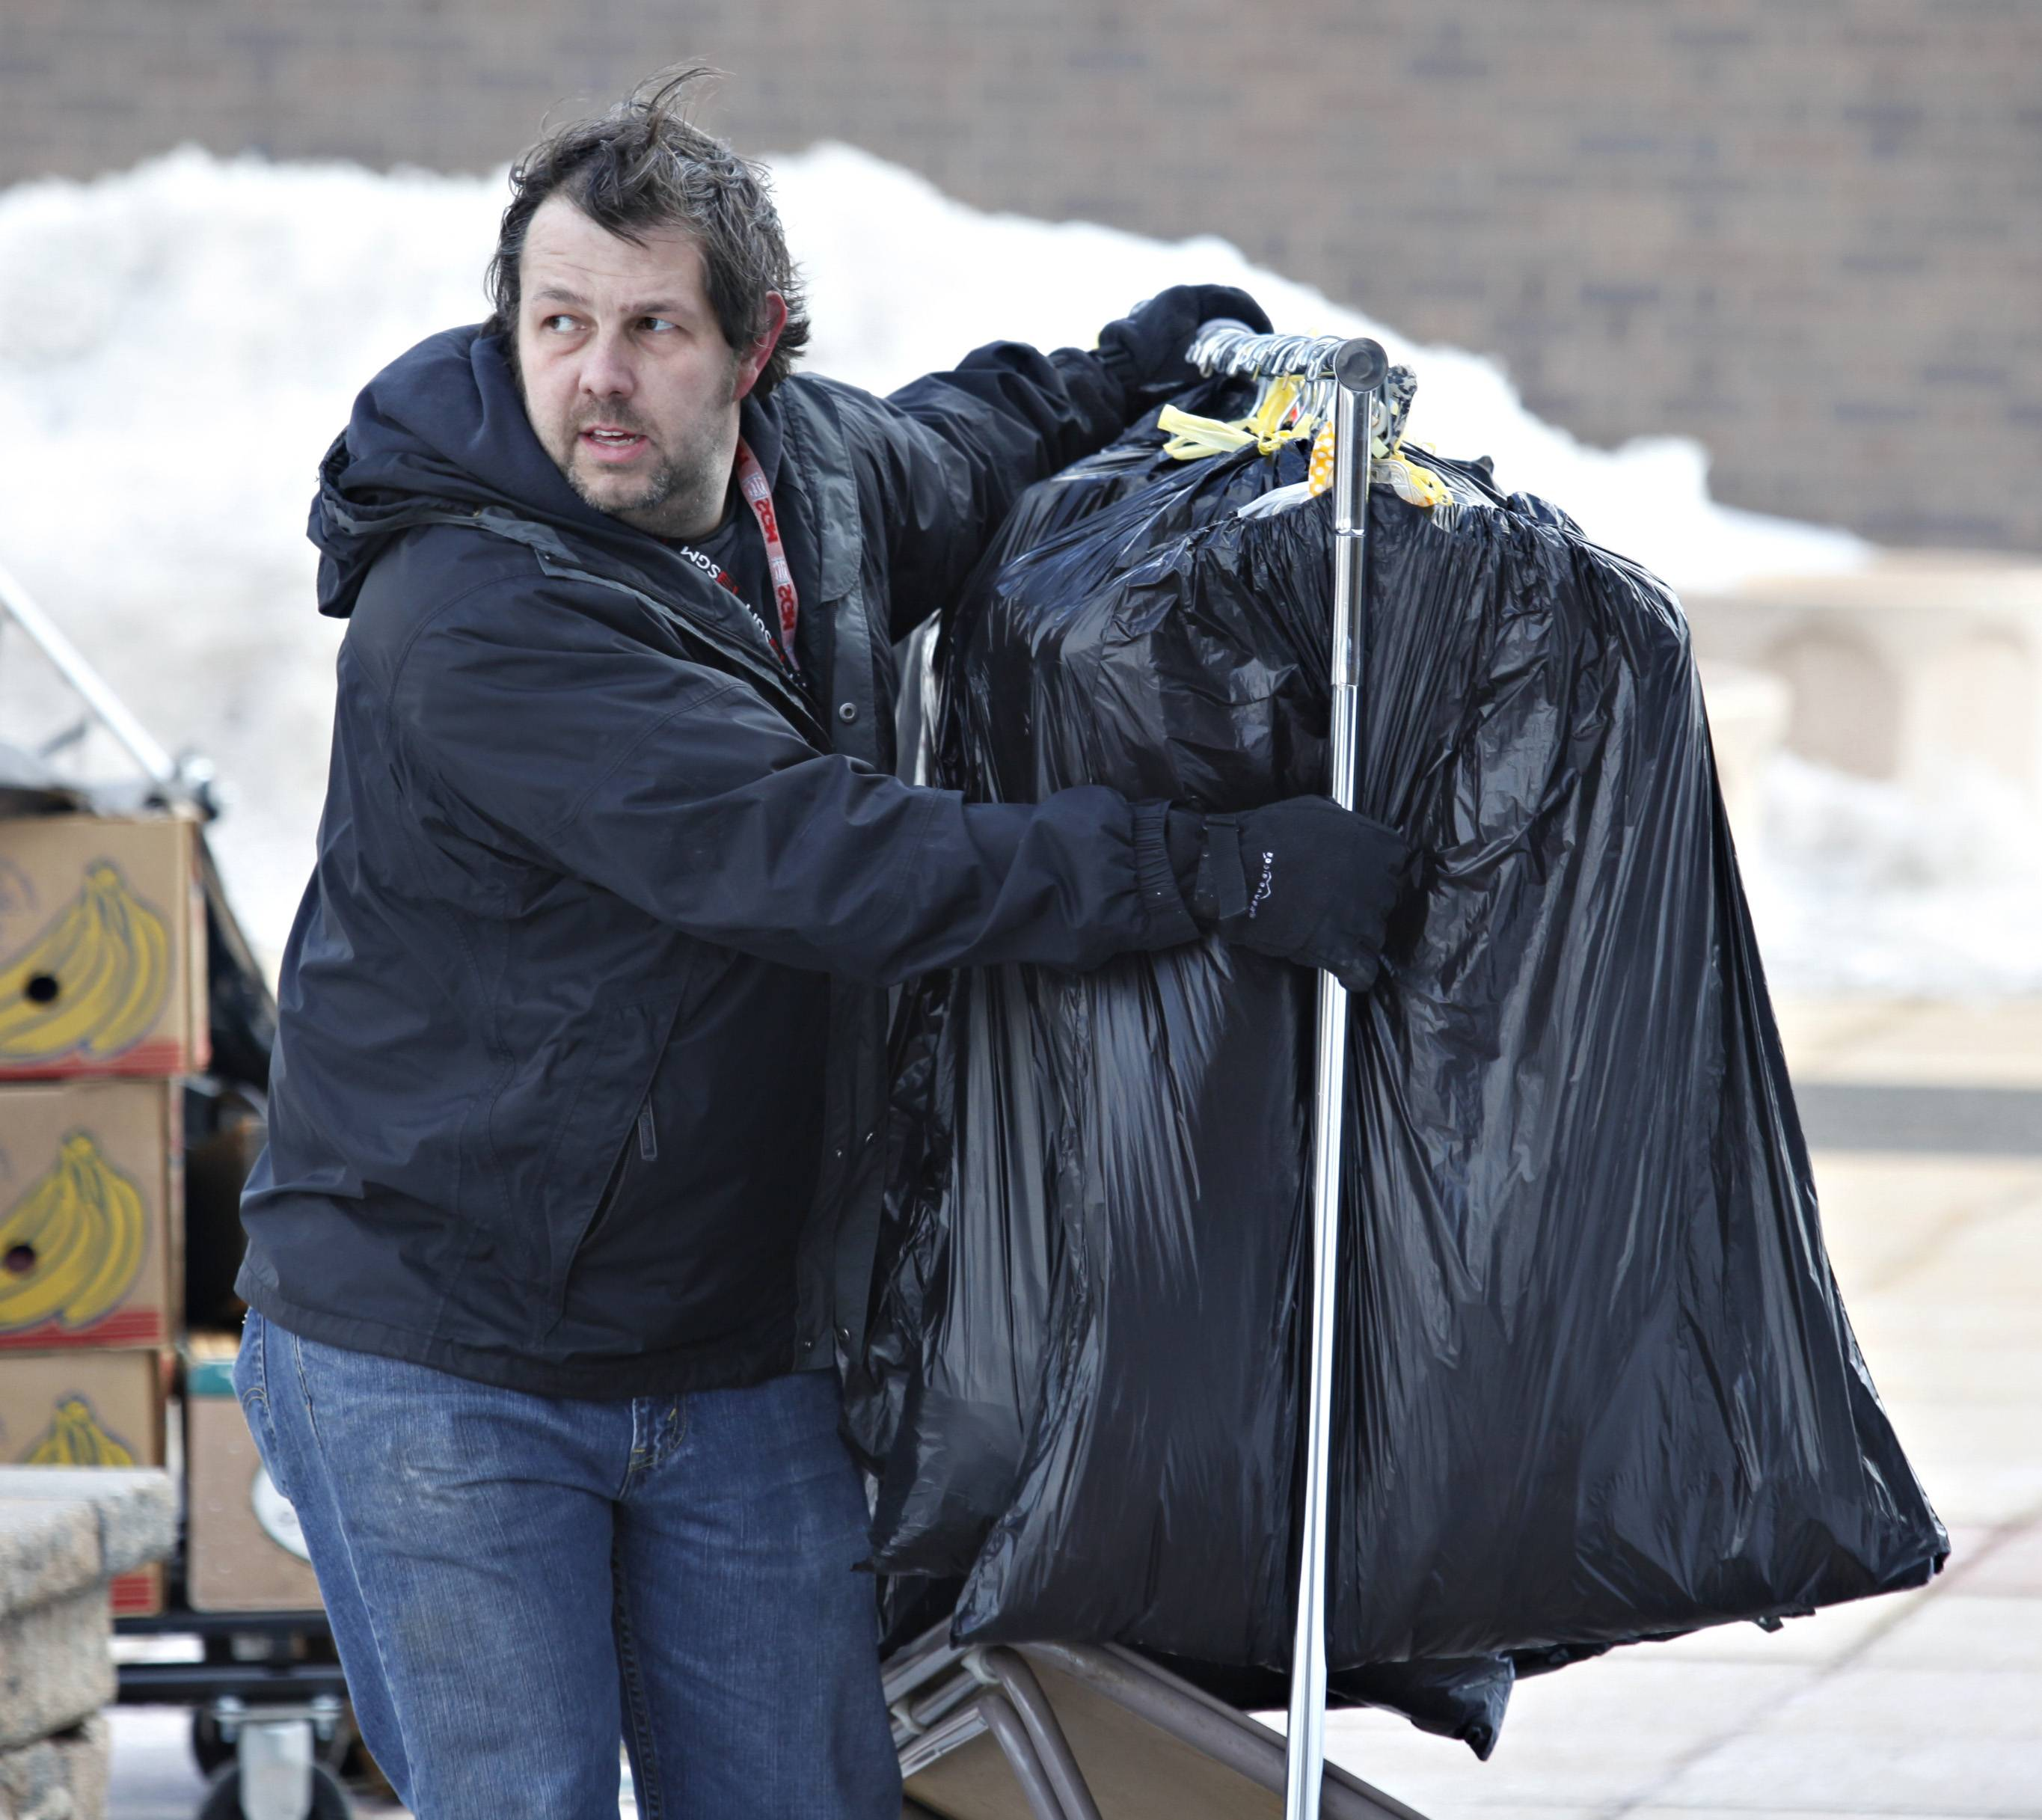 Larkin High School faculty member Adam Baxter braces against the wind as he helps to porter racks of vintage clothing into the Hemmens Auditorium Friday afternoon in preparation for the Cat's Pajamas Chicagoland Vintage Clothing, Jewelry and Textile Show & Sale.